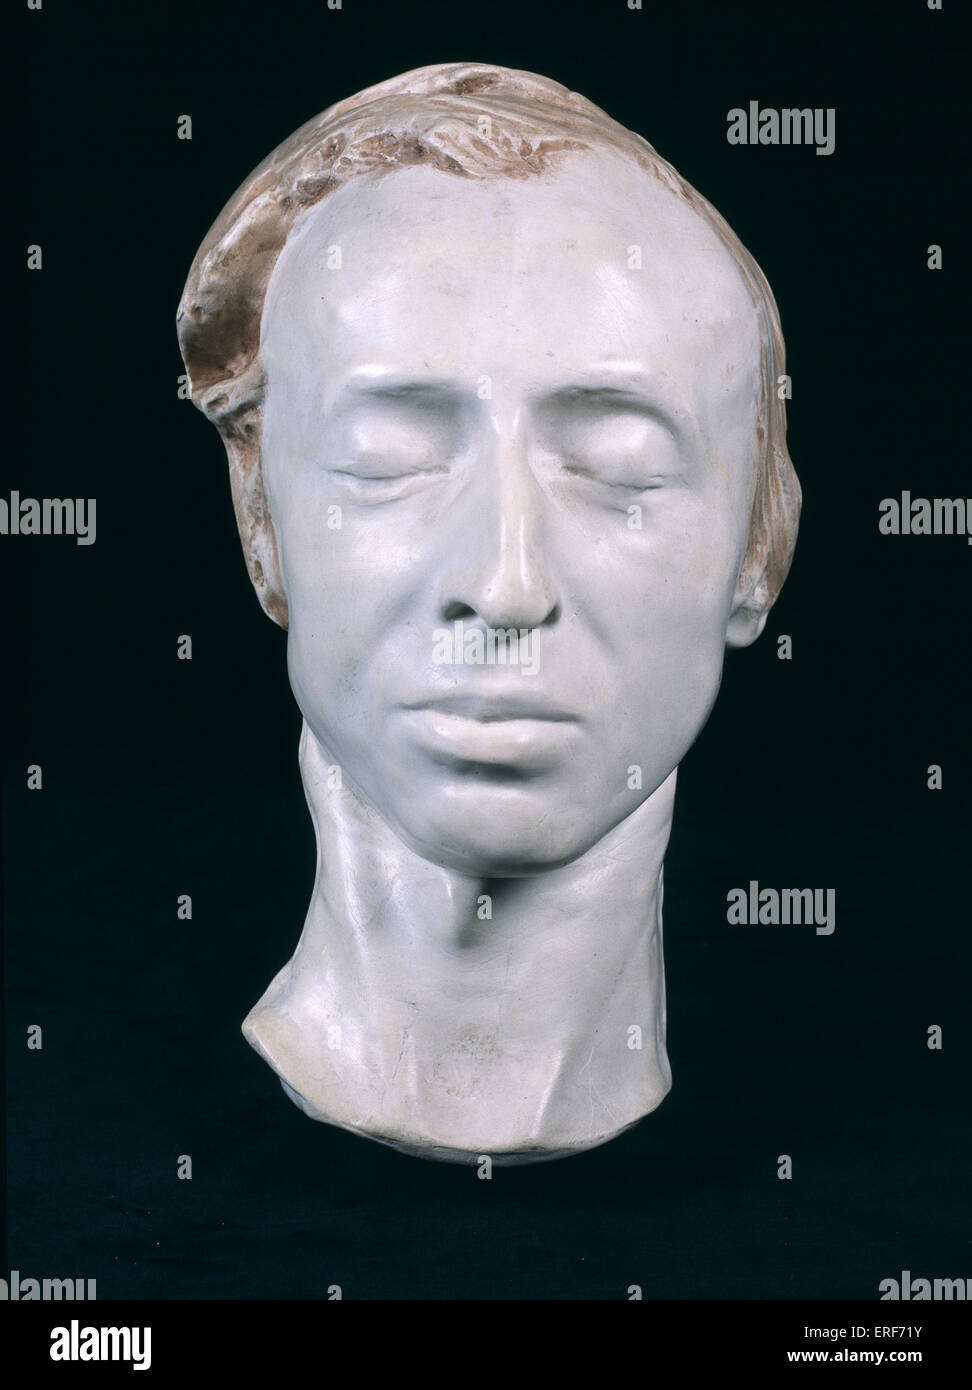 Frédéric Chopin 's death mask, 1849. Polish composer. Mask by A. Clésinger.  Frederic Chopin - Stock Image